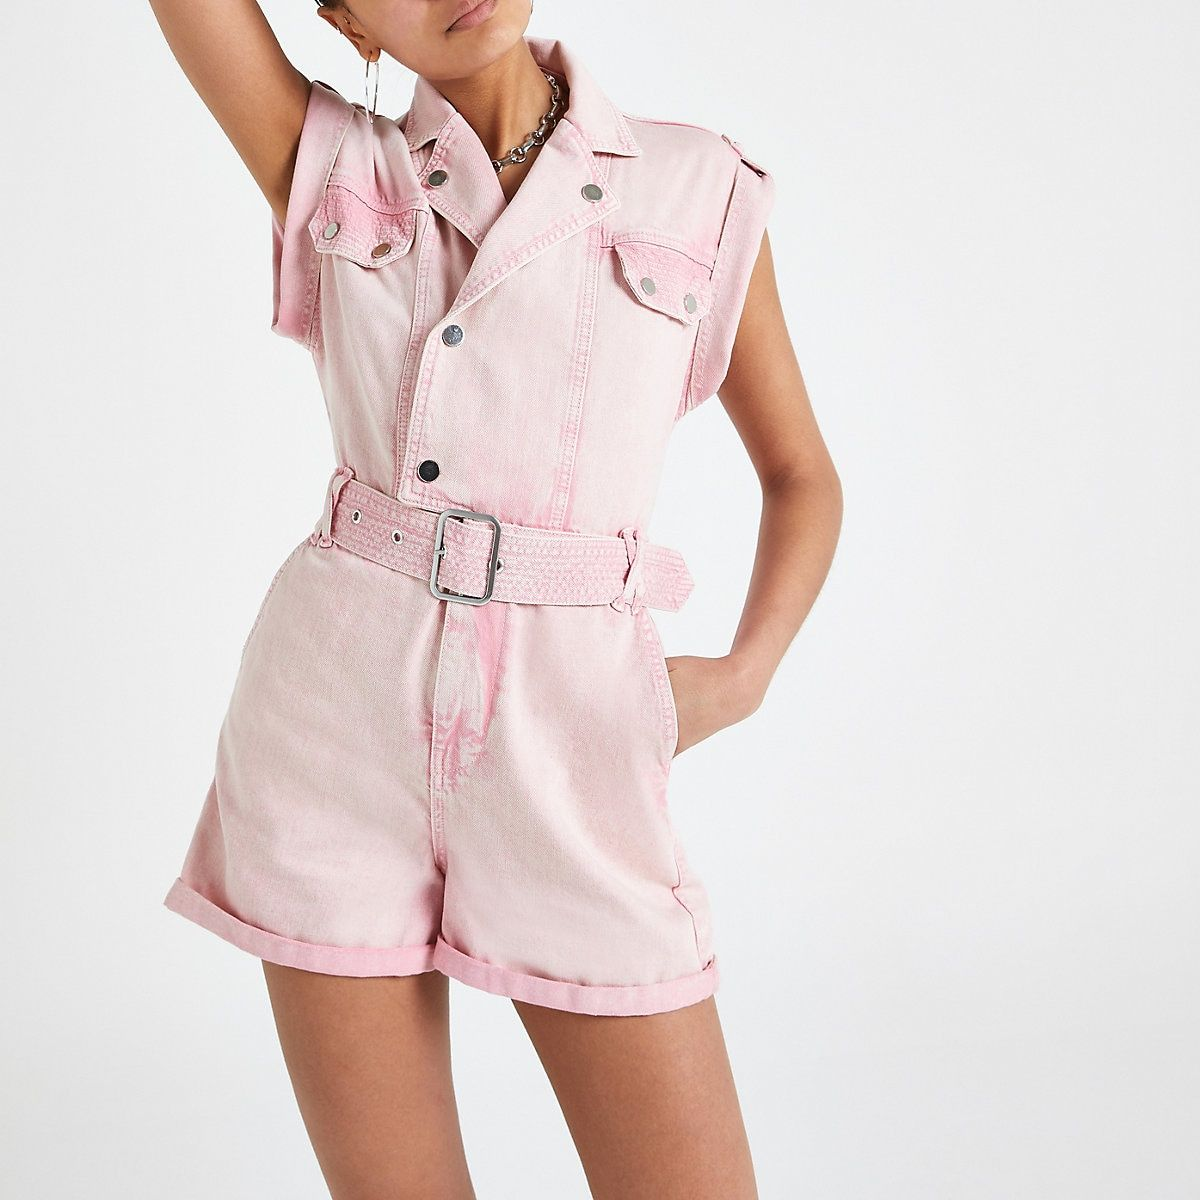 release date largest selection of comfortable feel River Island Pink utility denim romper in 2019 | Spring 2019 ...